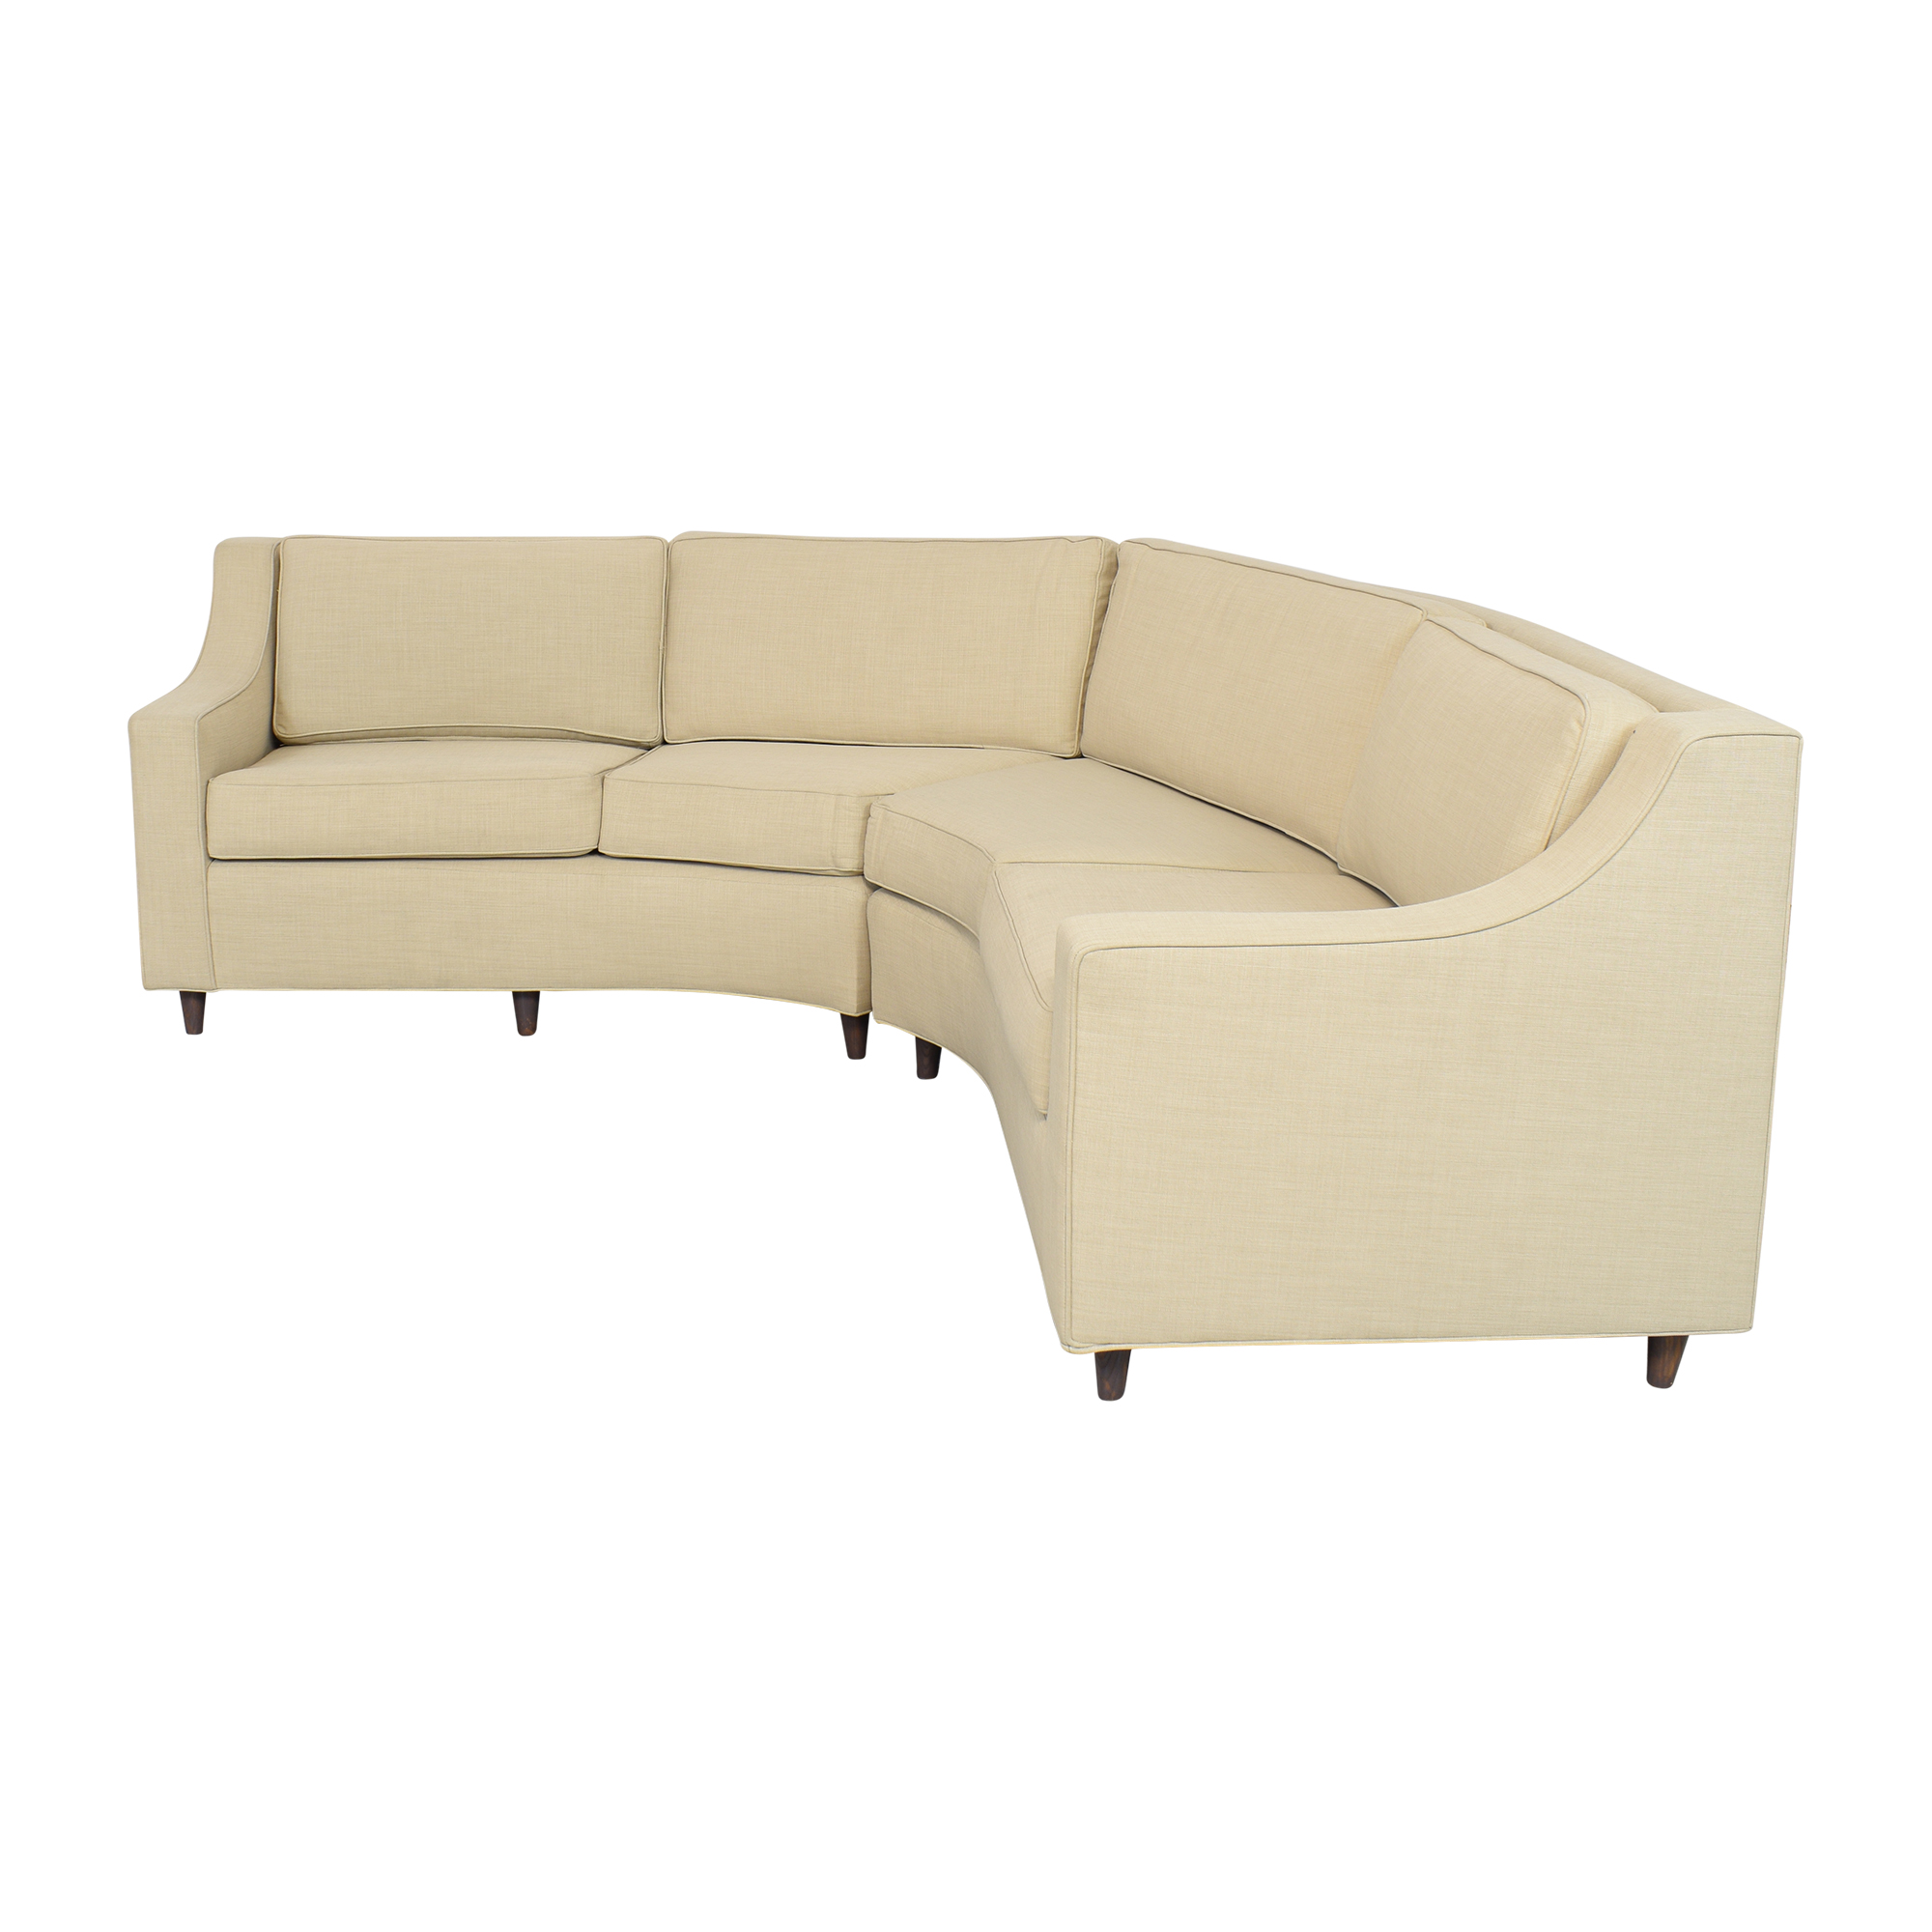 Stonebrook Interiors Mid Century Curved Sectional Sofa / Sofas